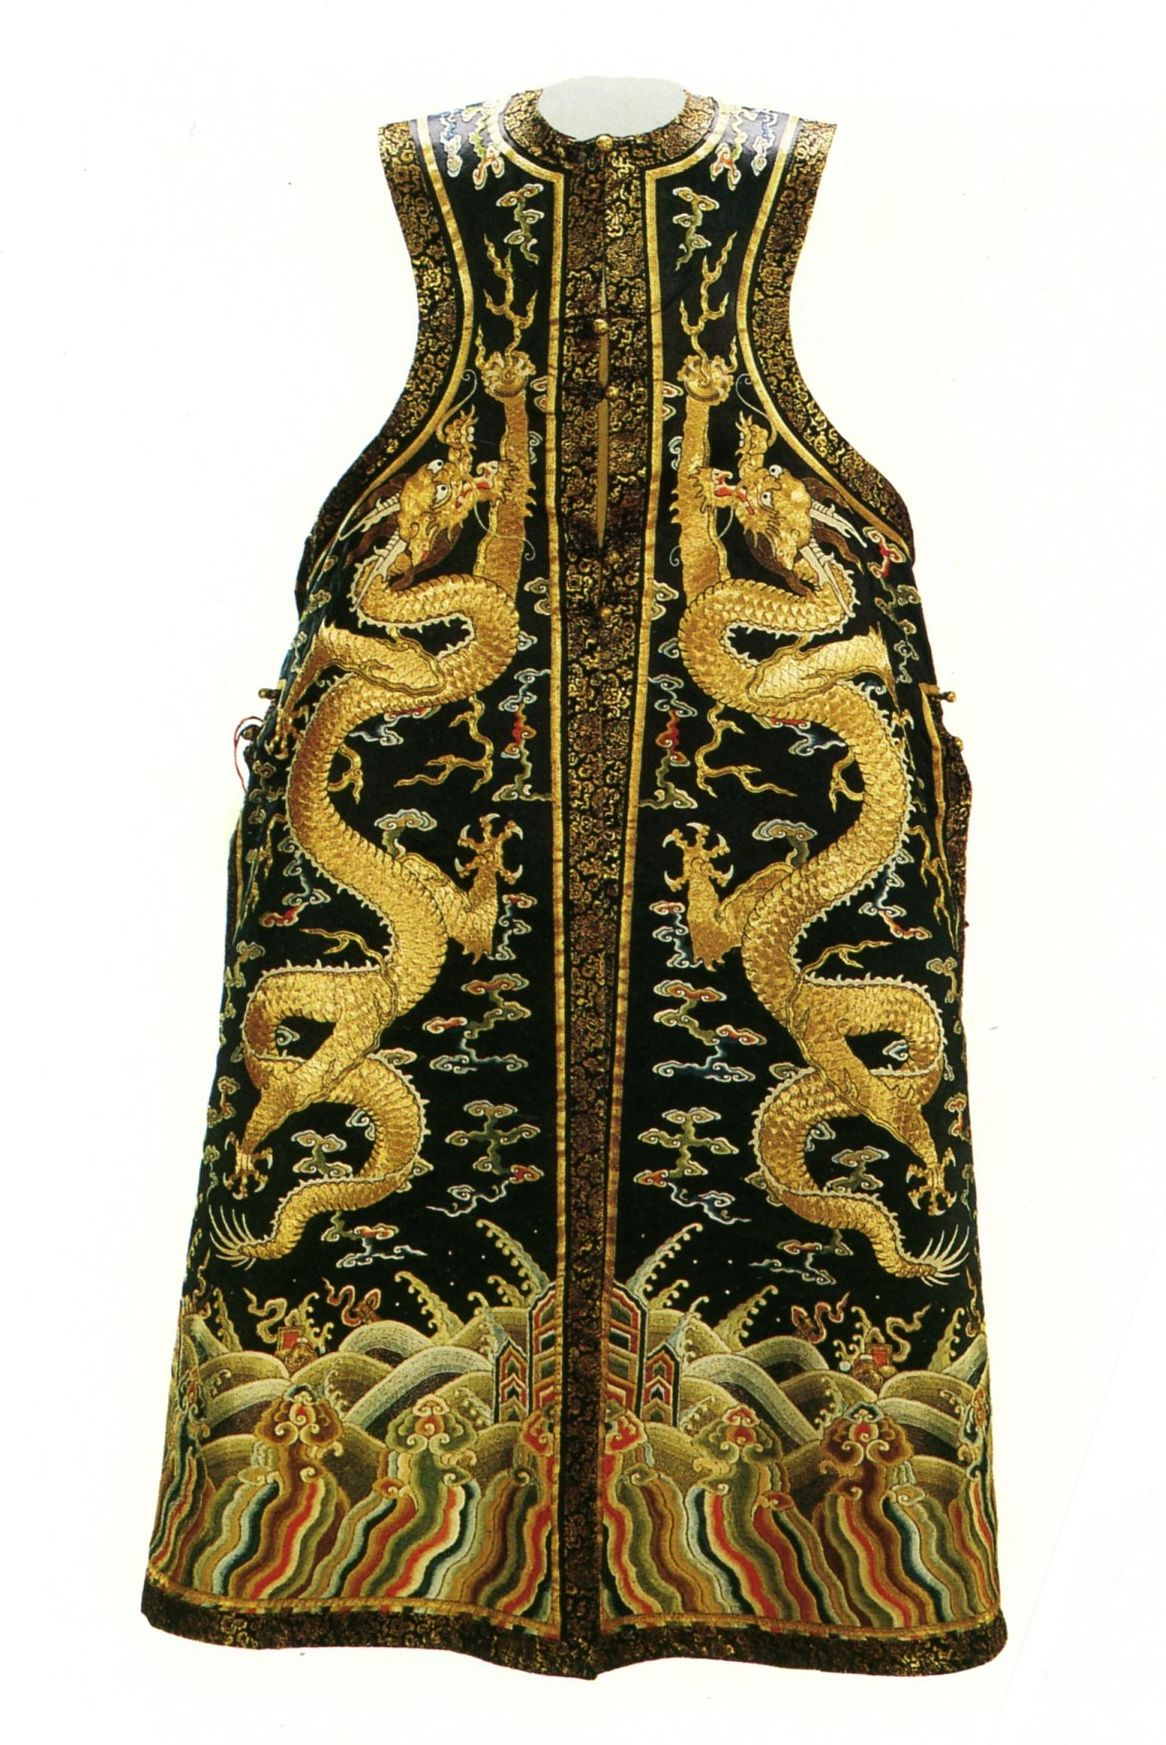 Qing Dynasty Empress Stole Worn Over Her Court Dress